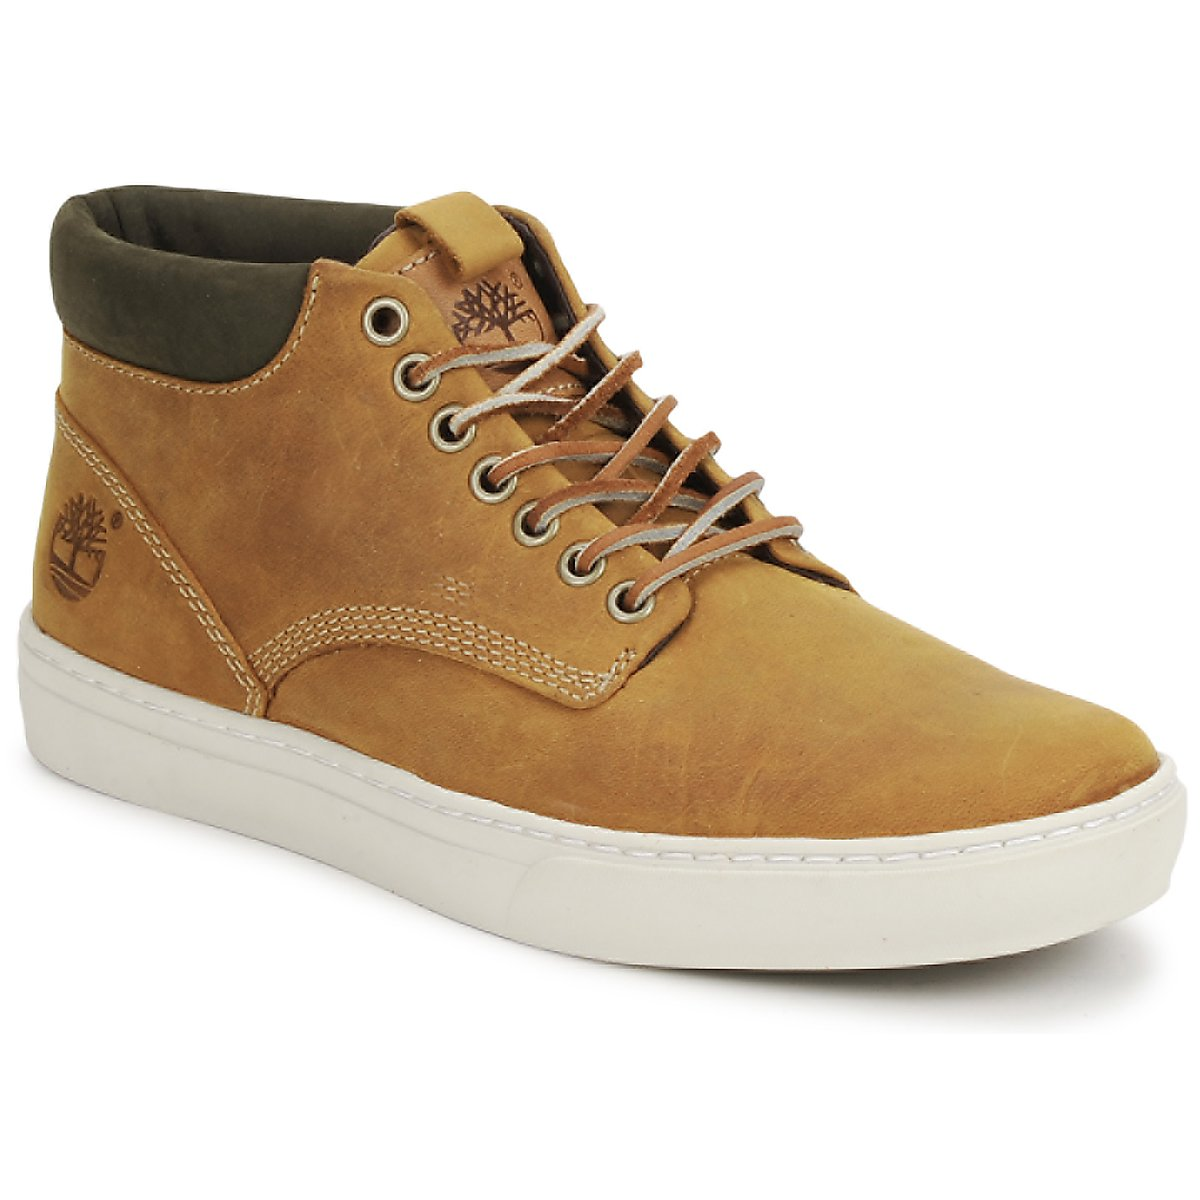 Chaussures timberland homme pas cher - Chaussures armistice pas cher ...